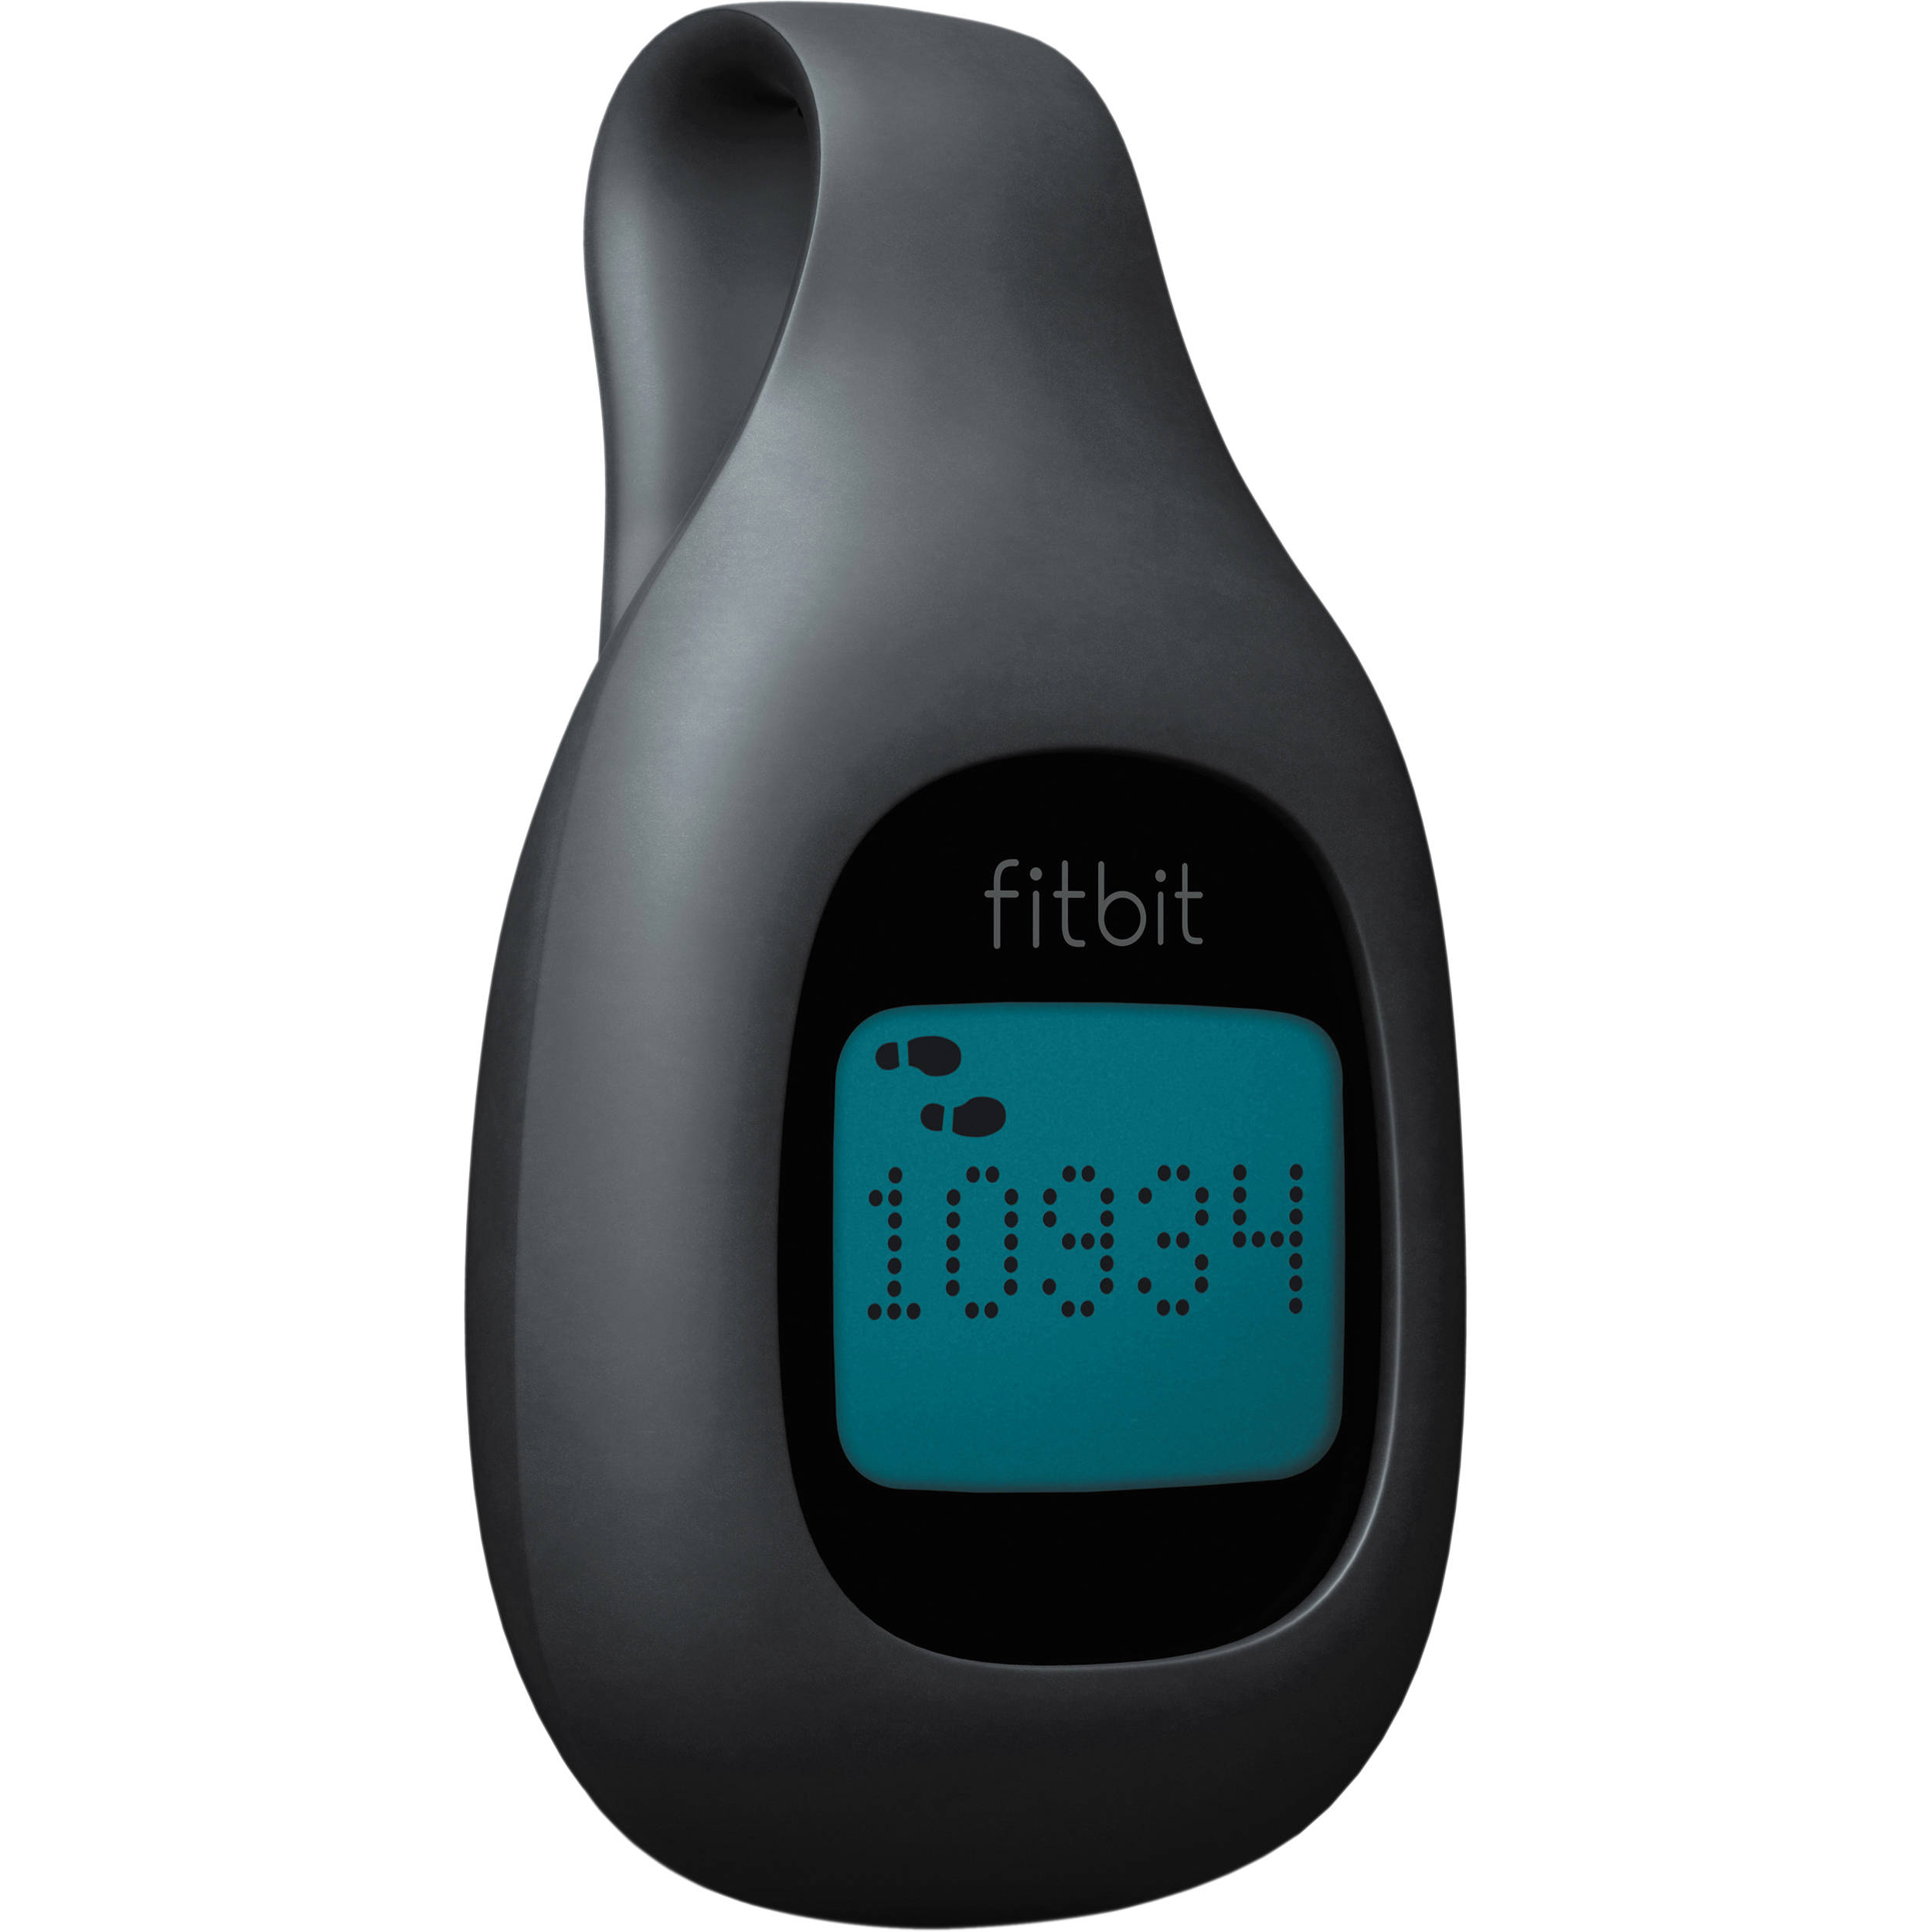 fitbit_fb301c_zip_wireless_activity_tracker_charcoal_1132686.jpg